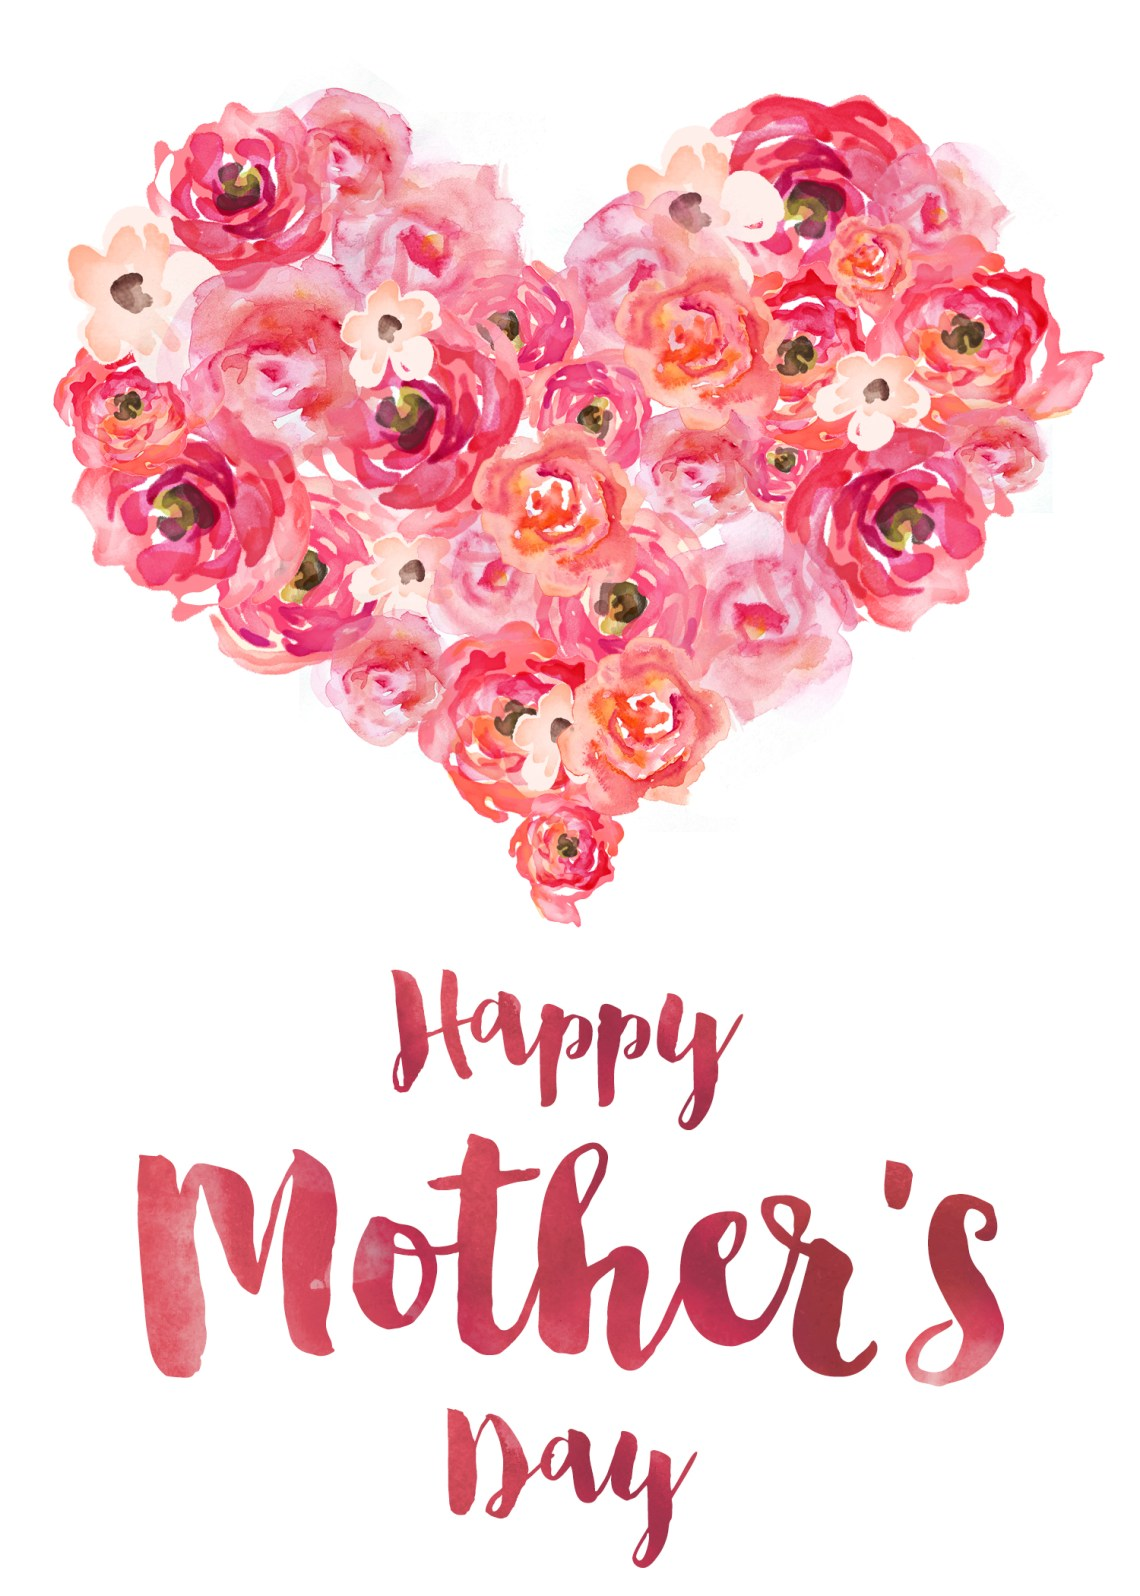 Image Result For Happy Mothers Day Mom In Heaven Images